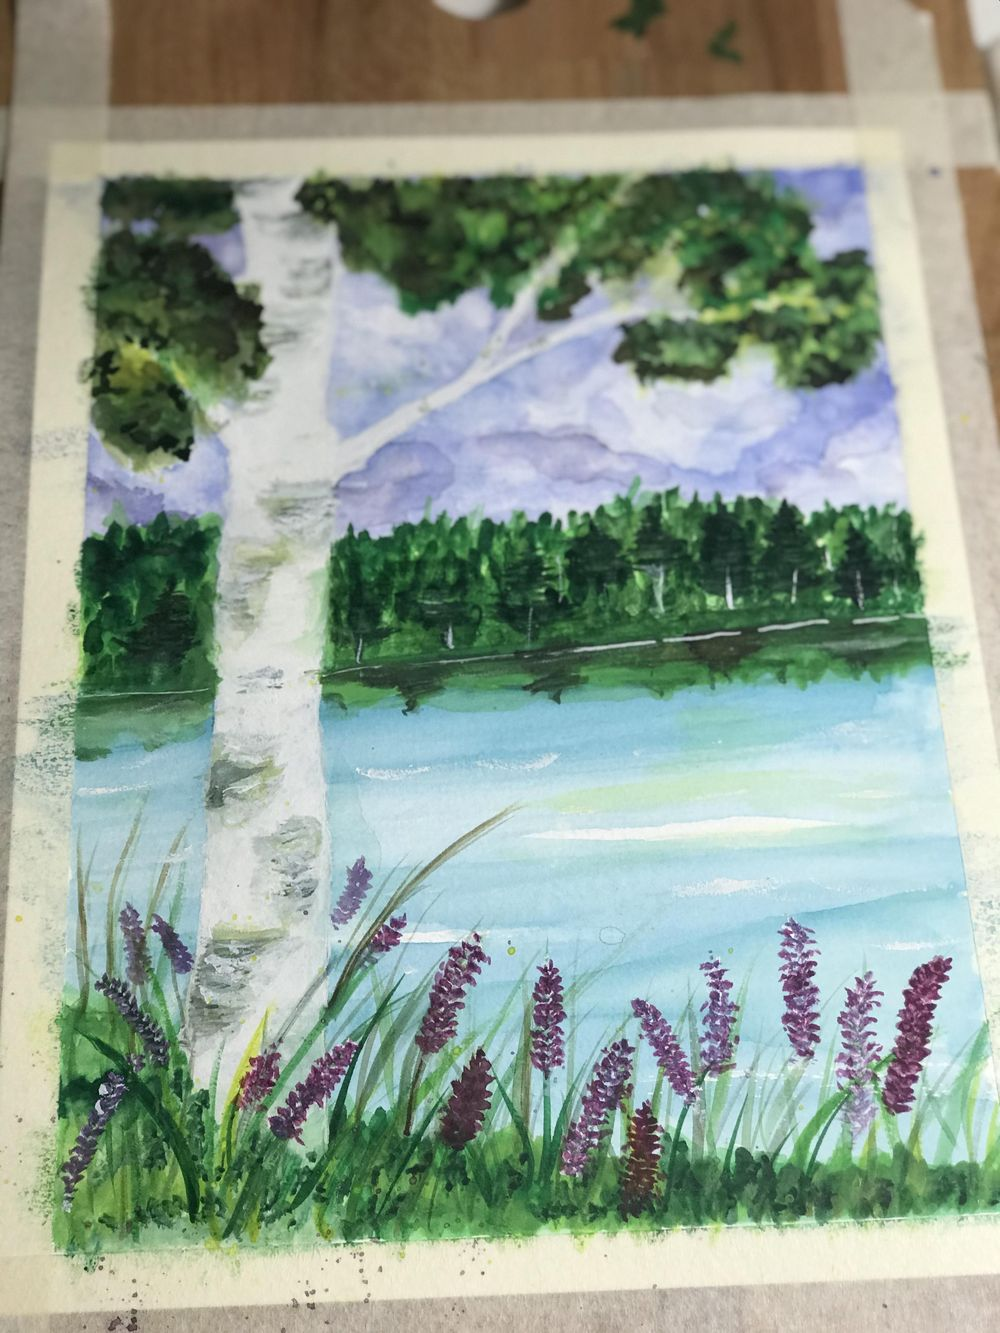 Birch tree - image 1 - student project